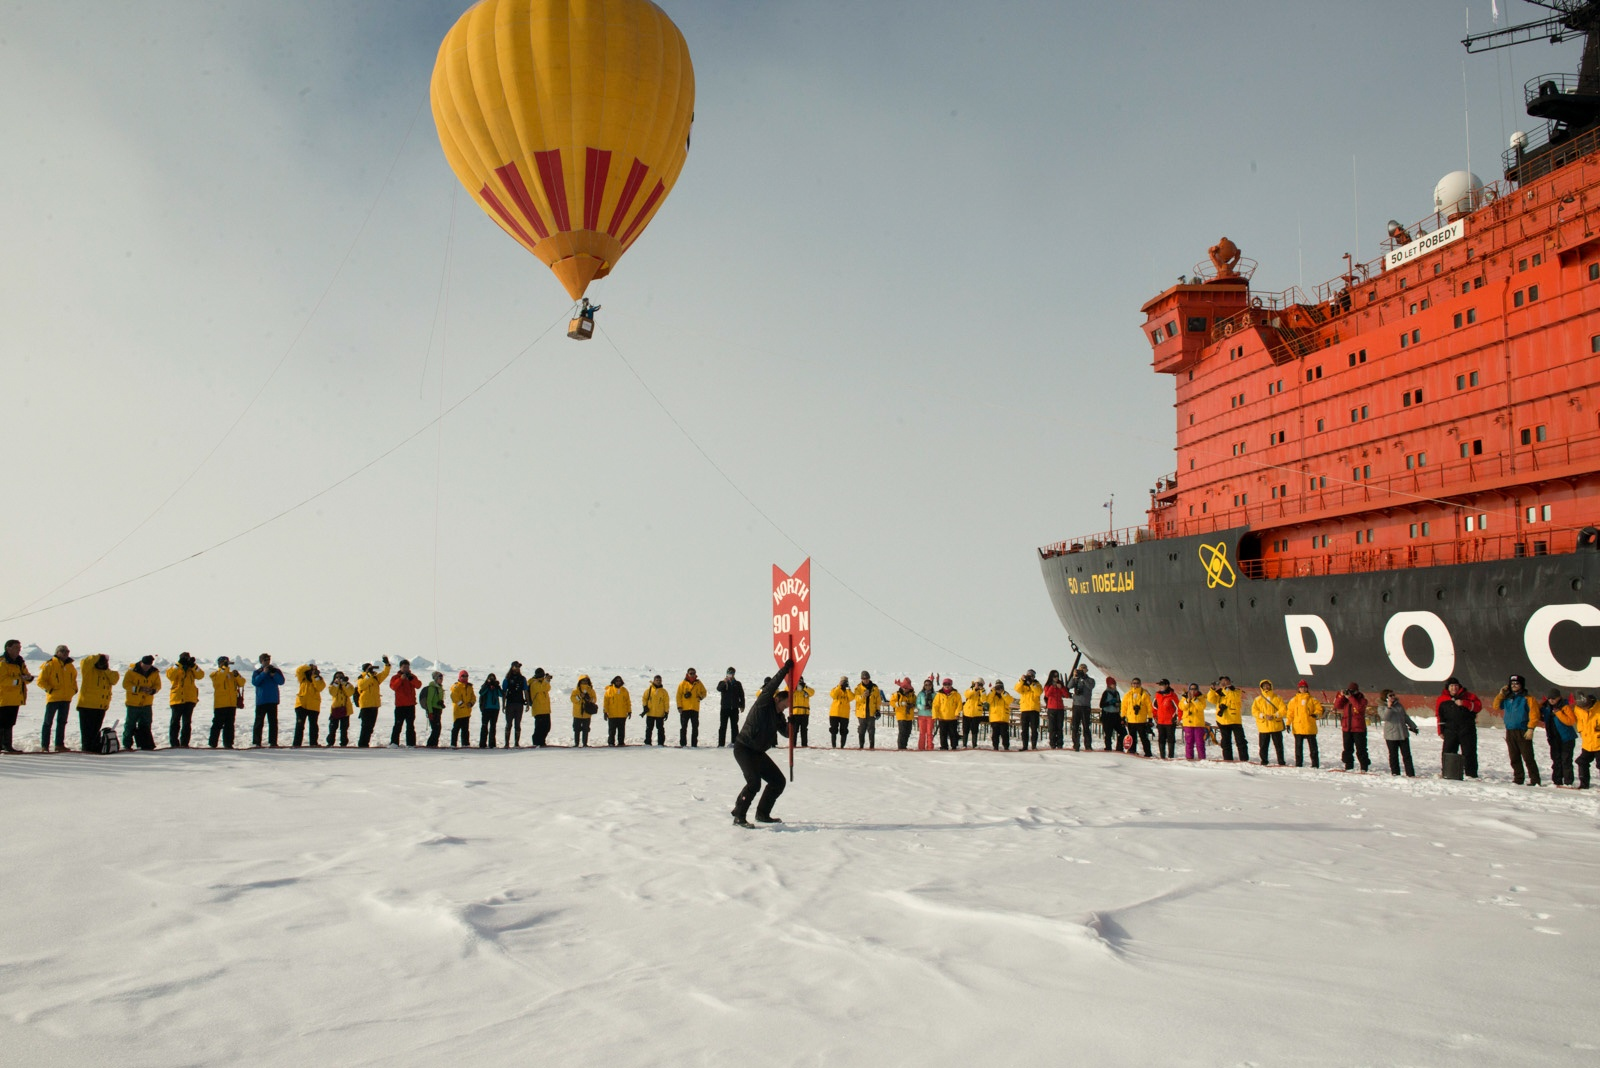 Celebrate reaching the North Pole with a hot air balloon ride (optional extra).